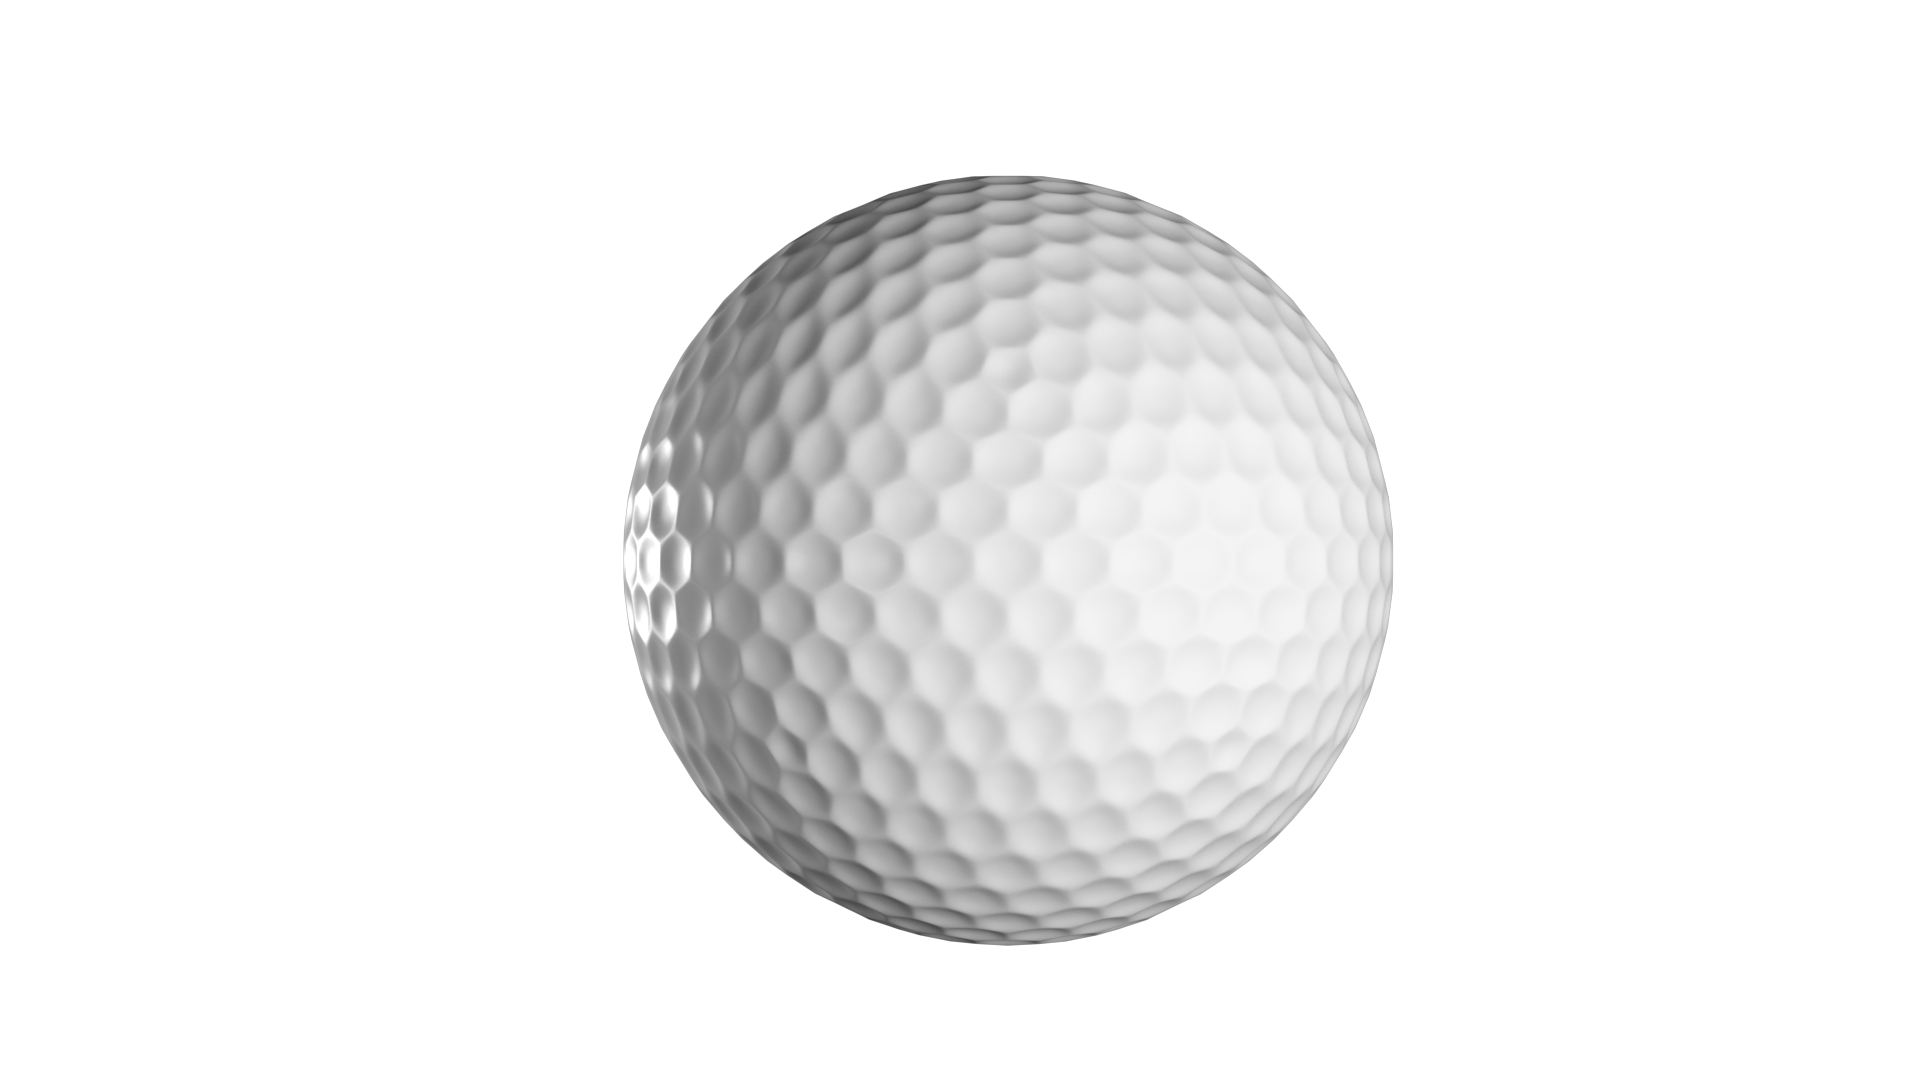 Golf ball png. Download image arts